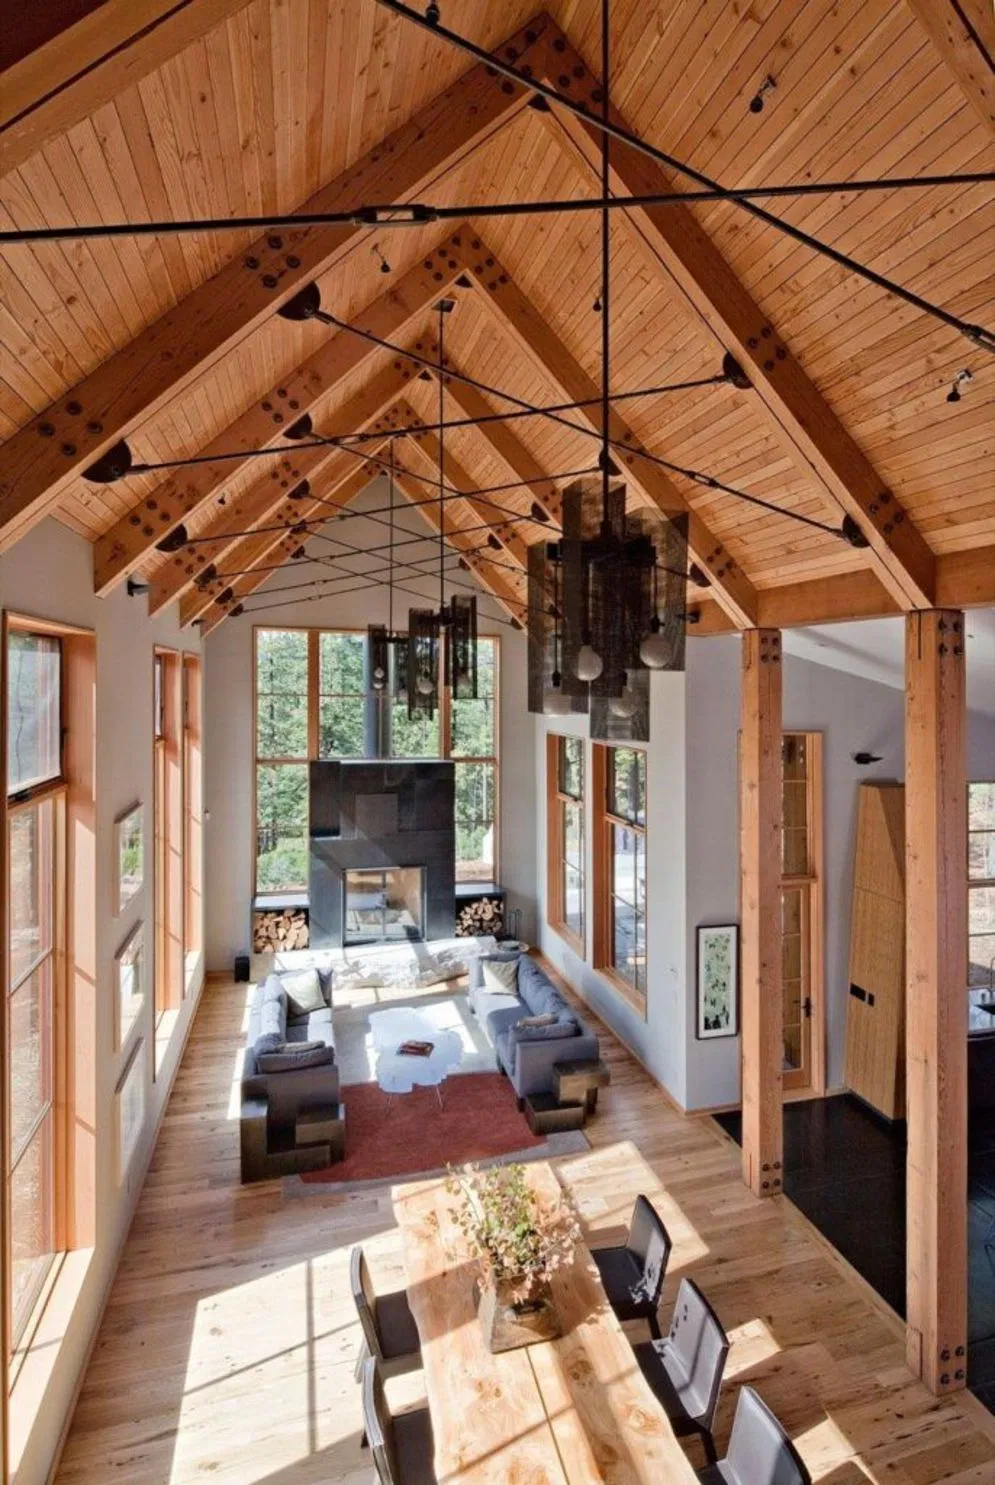 Top Vaulted Ceiling Designs Improving Interior Height Best For Narrow Home Spaces Shairoom Com Cathedral Ceiling Modern Cabin House